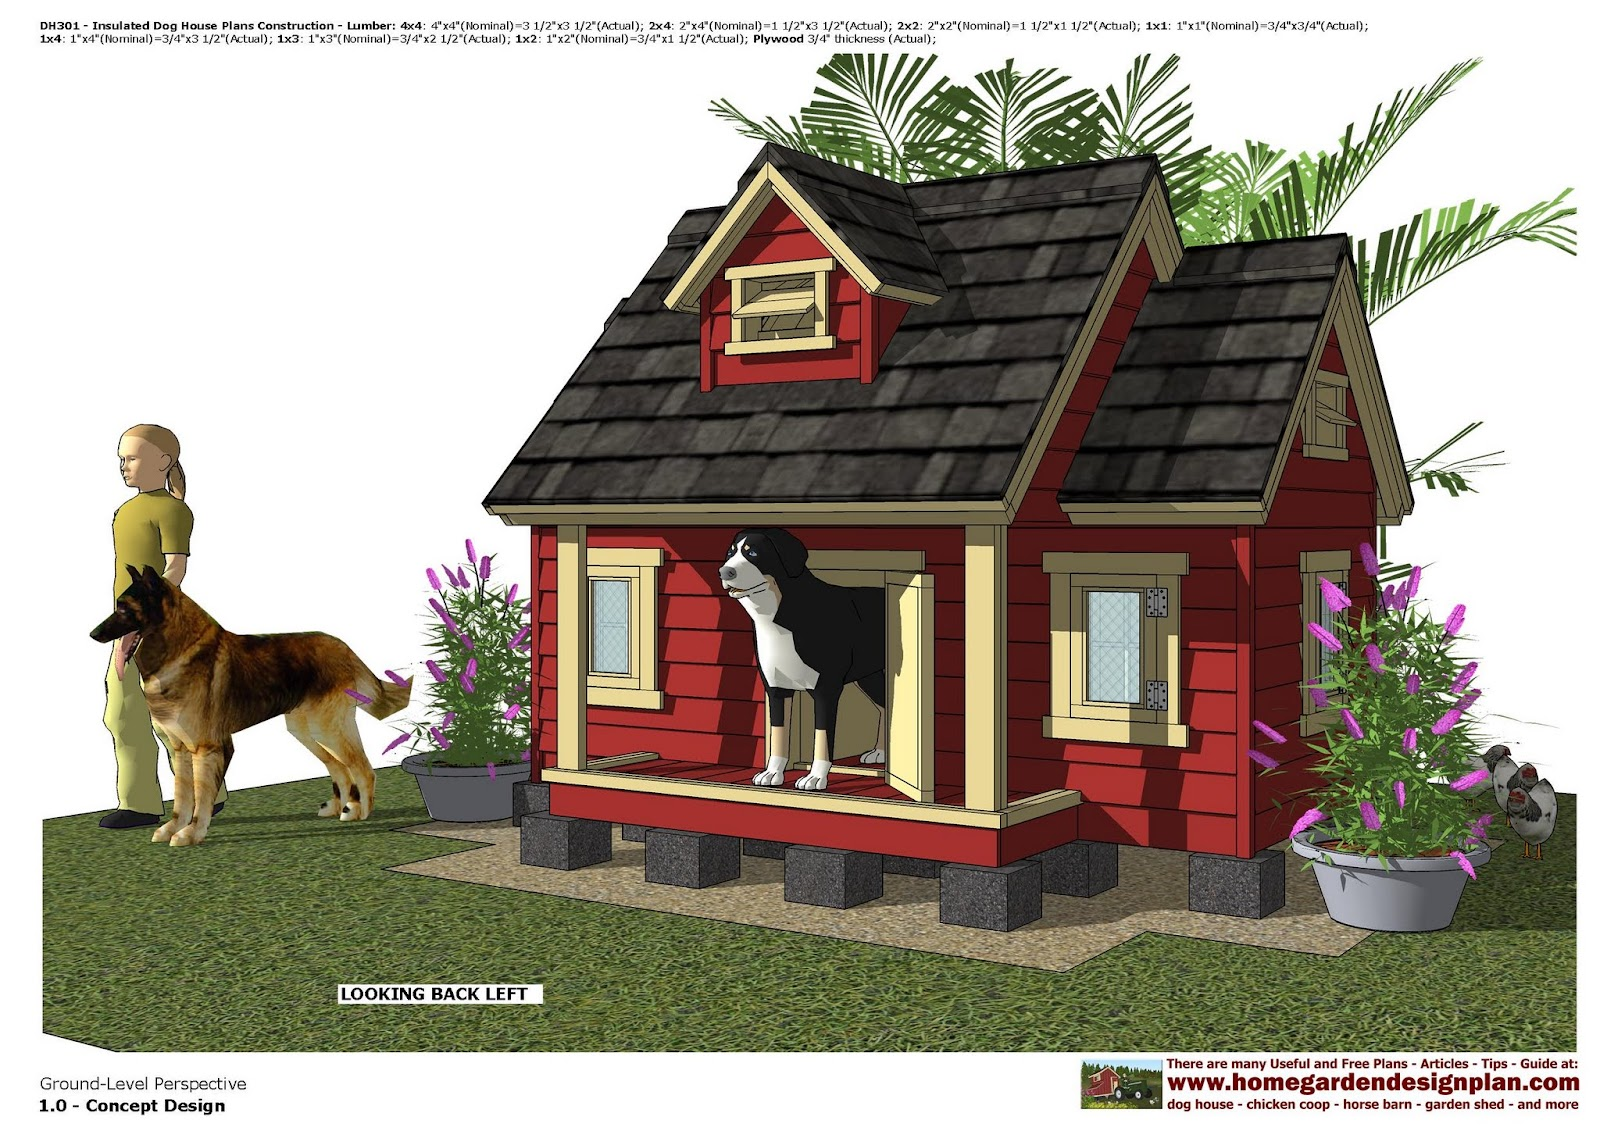 Home garden plans dh301 insulated dog house plans dog for Dog house layouts